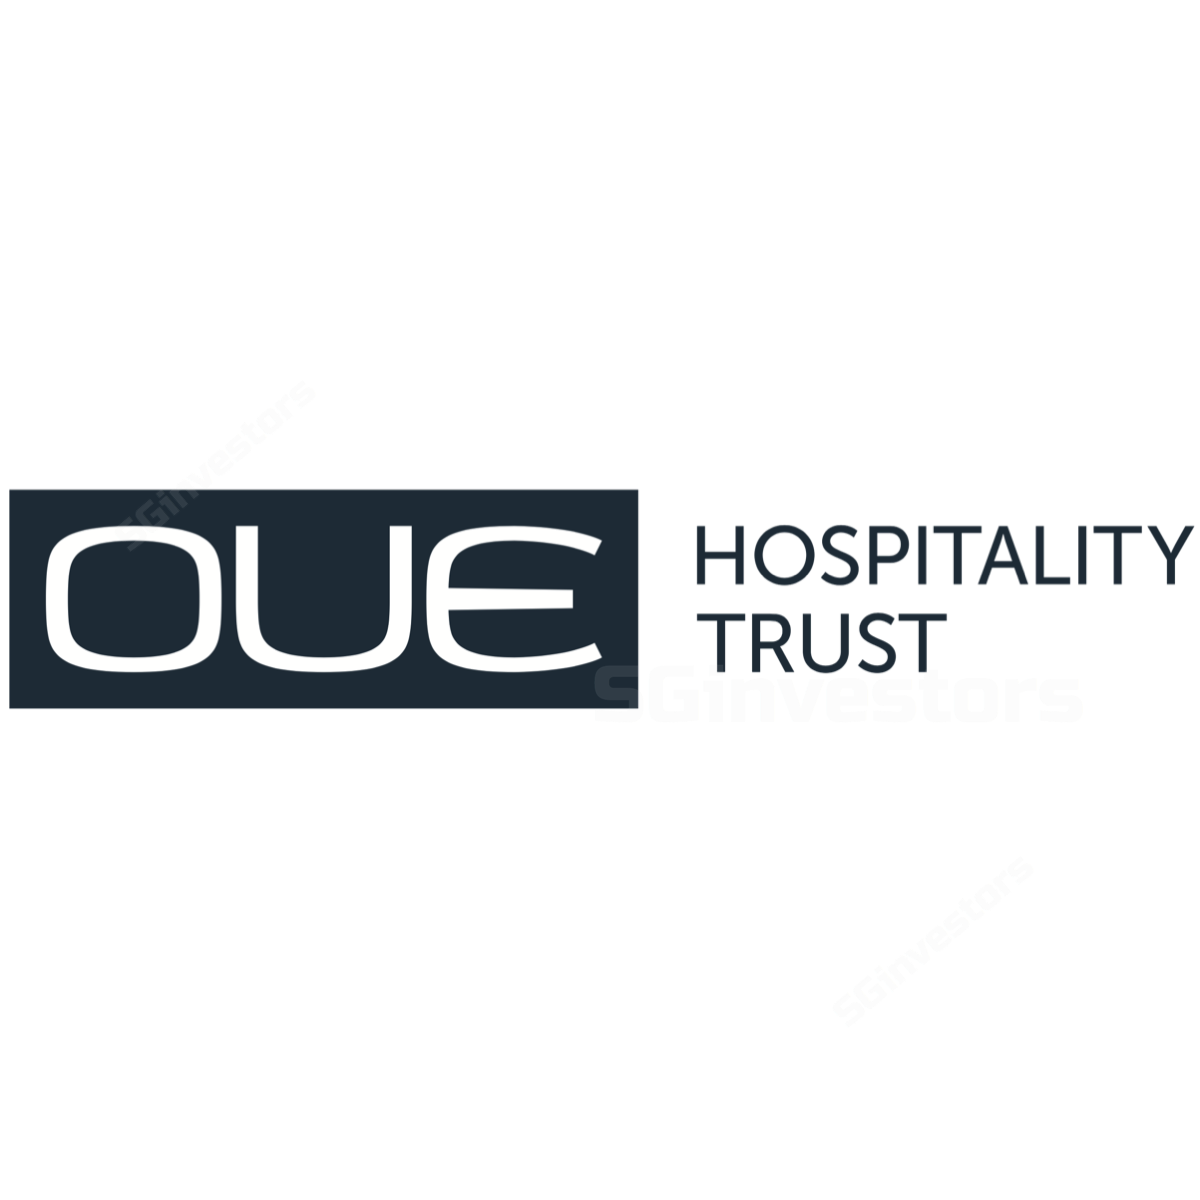 OUE Hospitality Trust - RHB Invest 2017-12-19: All Signs Point To A Better 2018